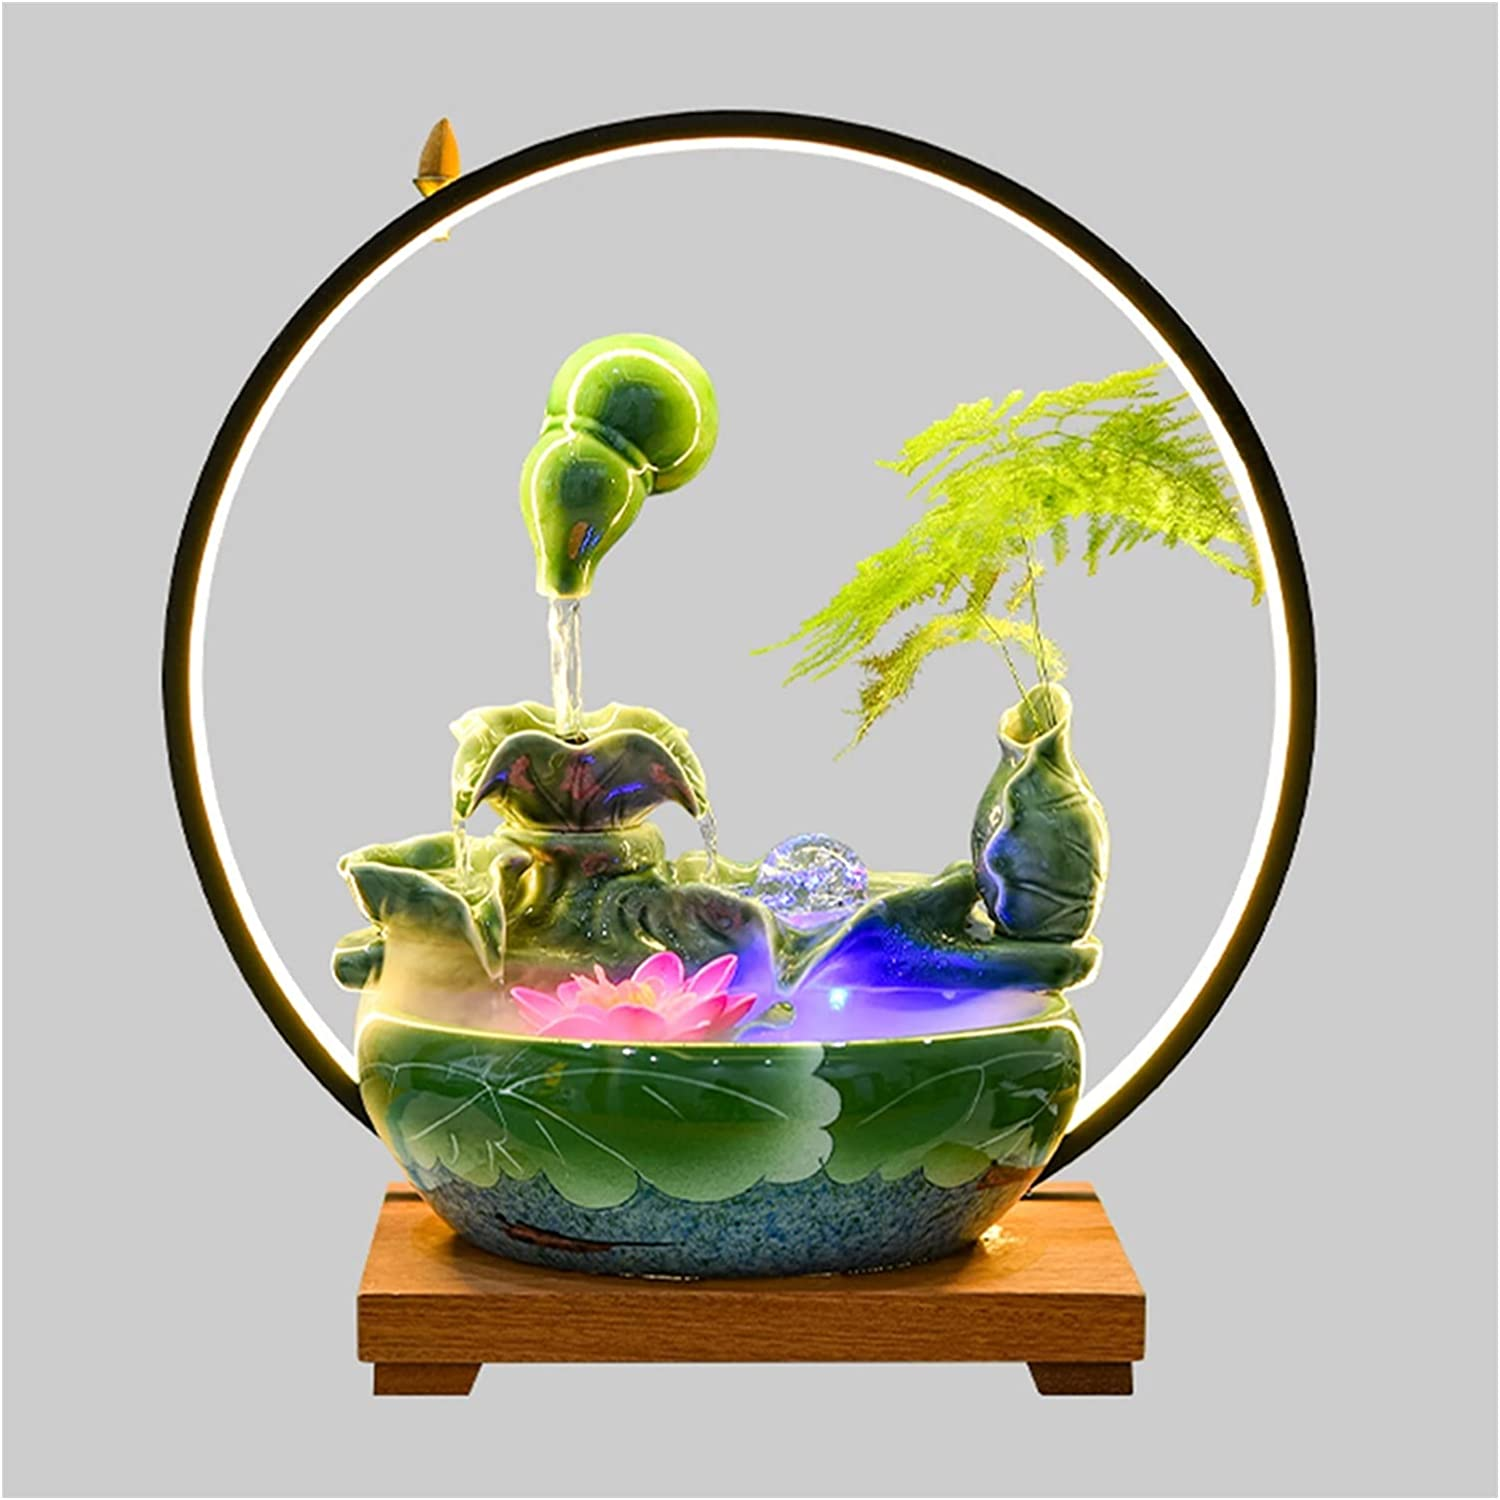 Water Fountain Desktop Ornament Quality inspection Fountains Tabletop Indoor Relaxa Selling